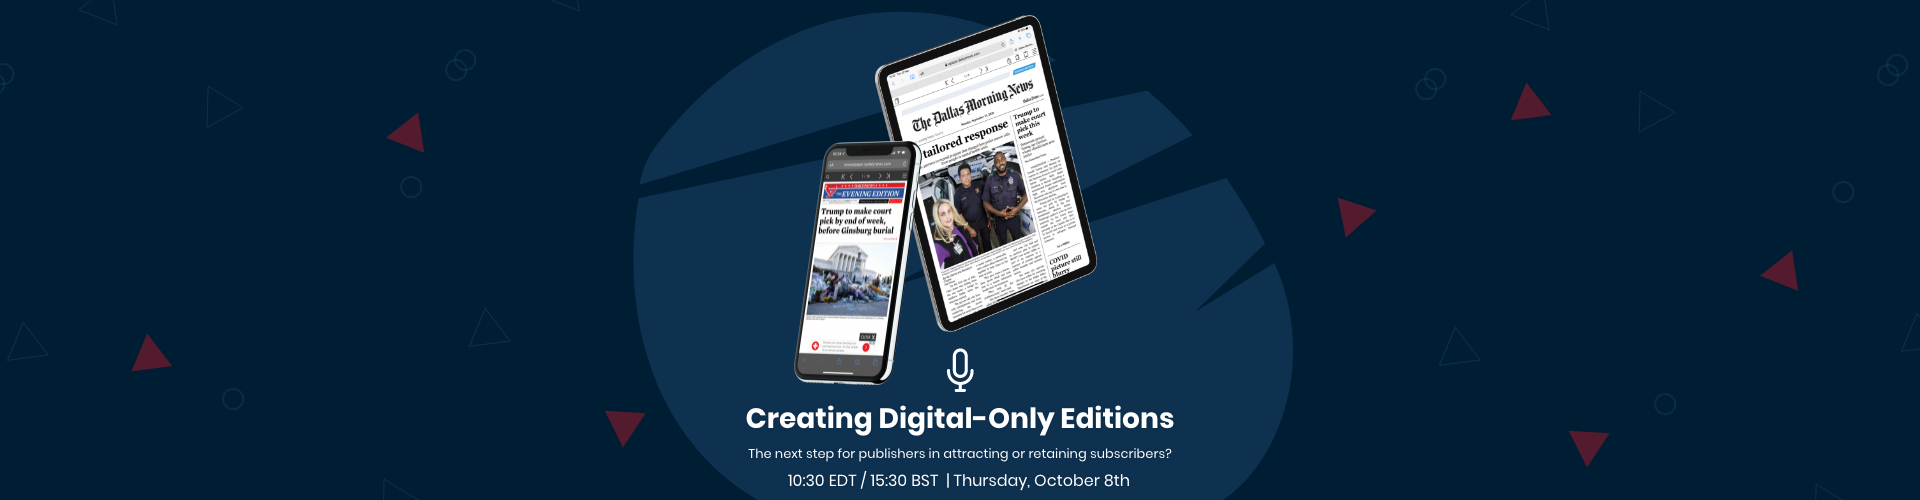 Header image of Webinar: Creating Digital-Only Editions